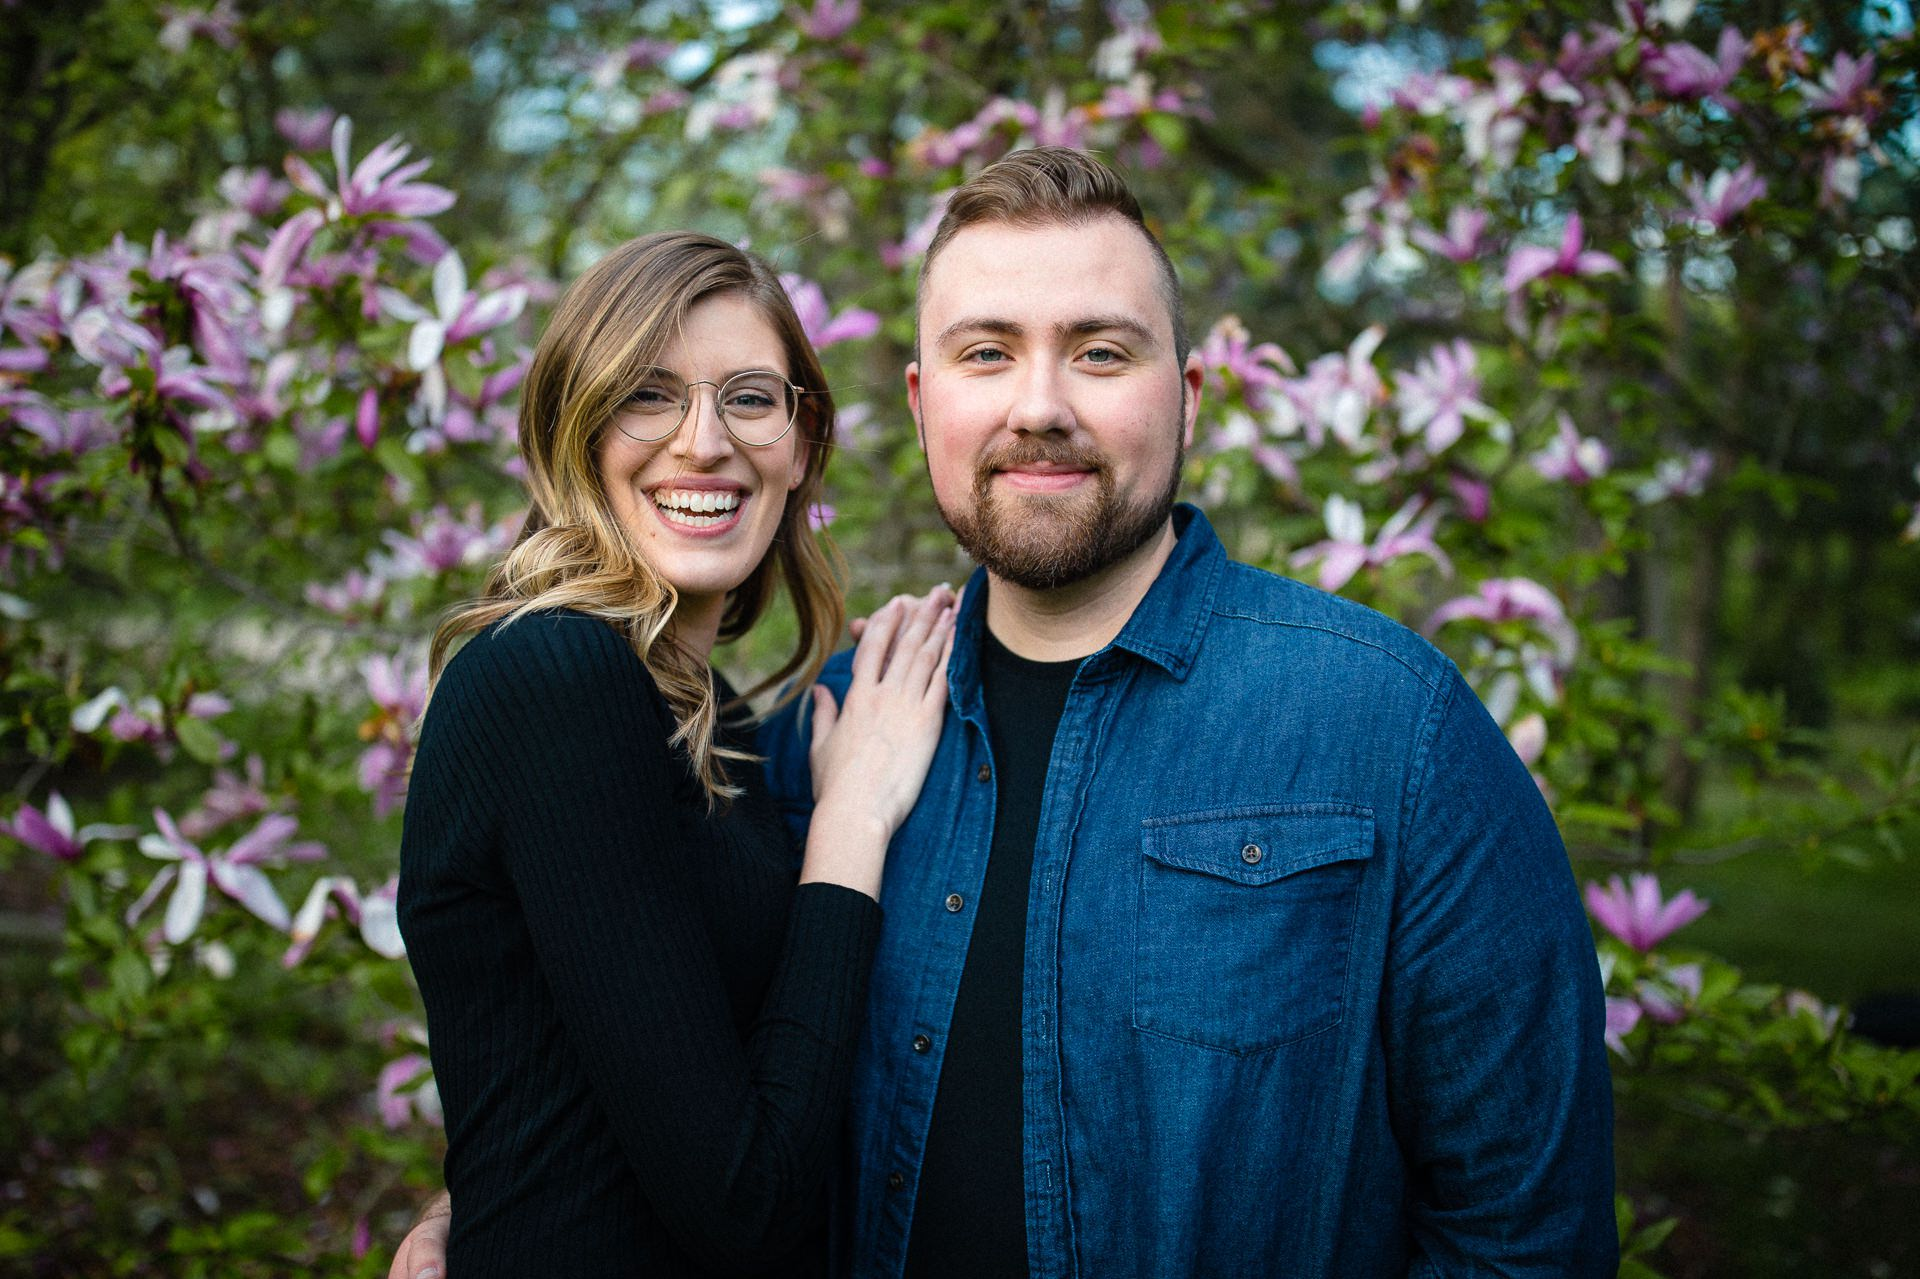 Spring Cleveland Botanical Gardens Engagement Photos 13.jpg